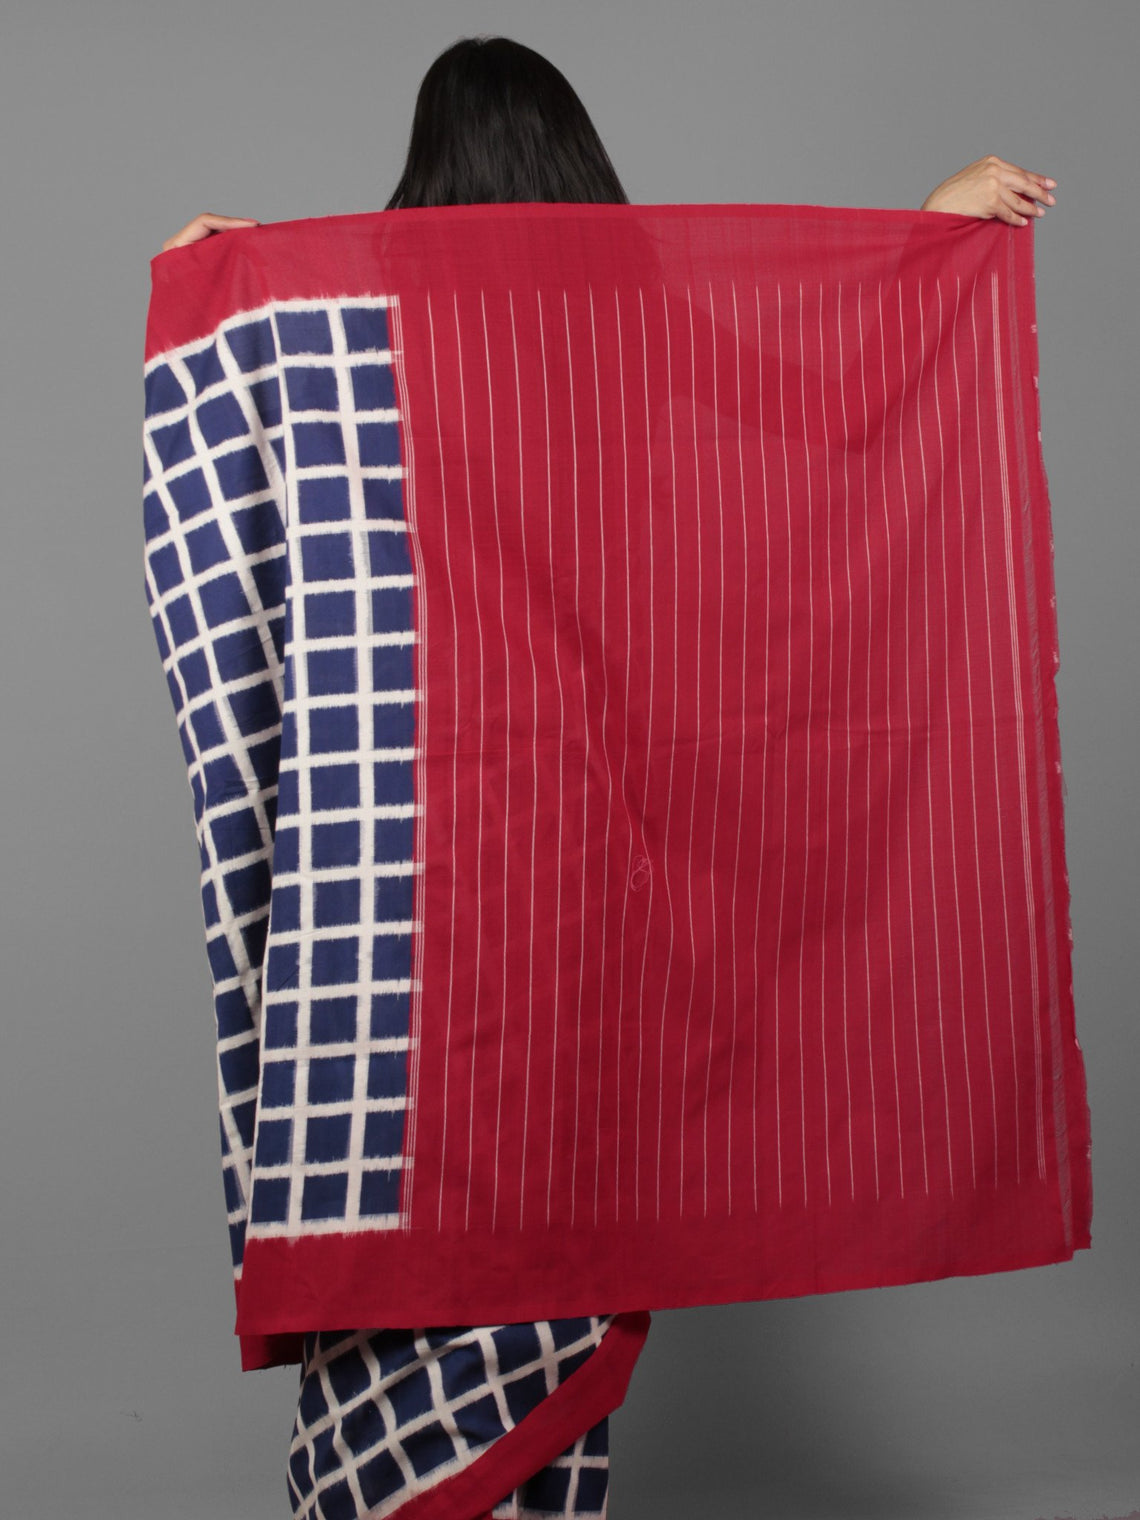 Indigo Ivory Maroon Double Ikat Handwoven Pochampally Cotton Saree - S031701921